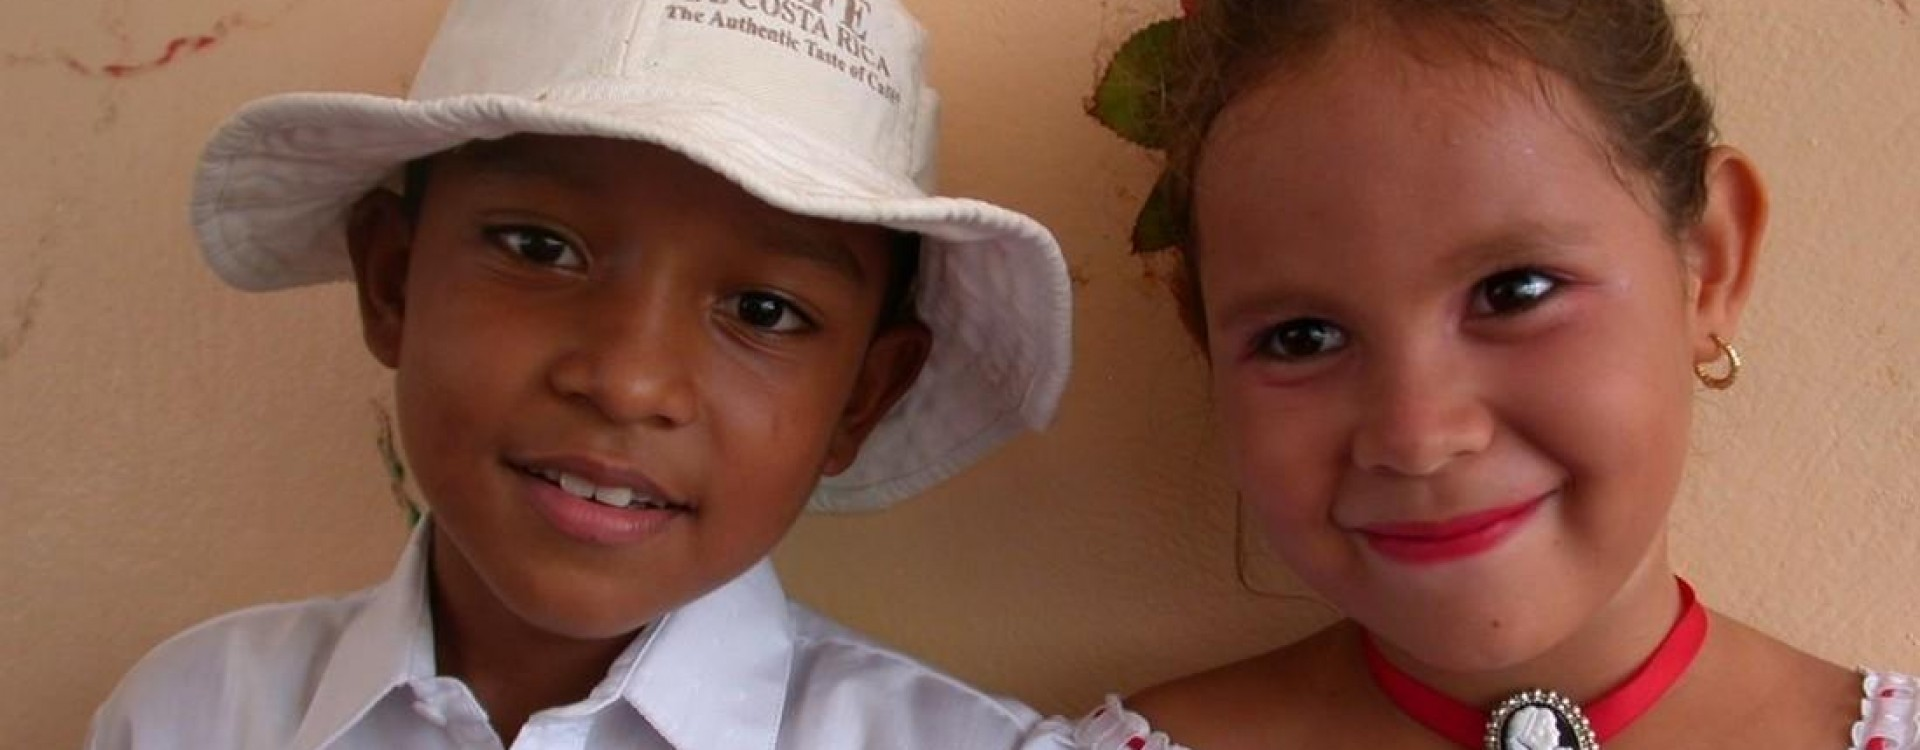 Costa Rican Children dressed up